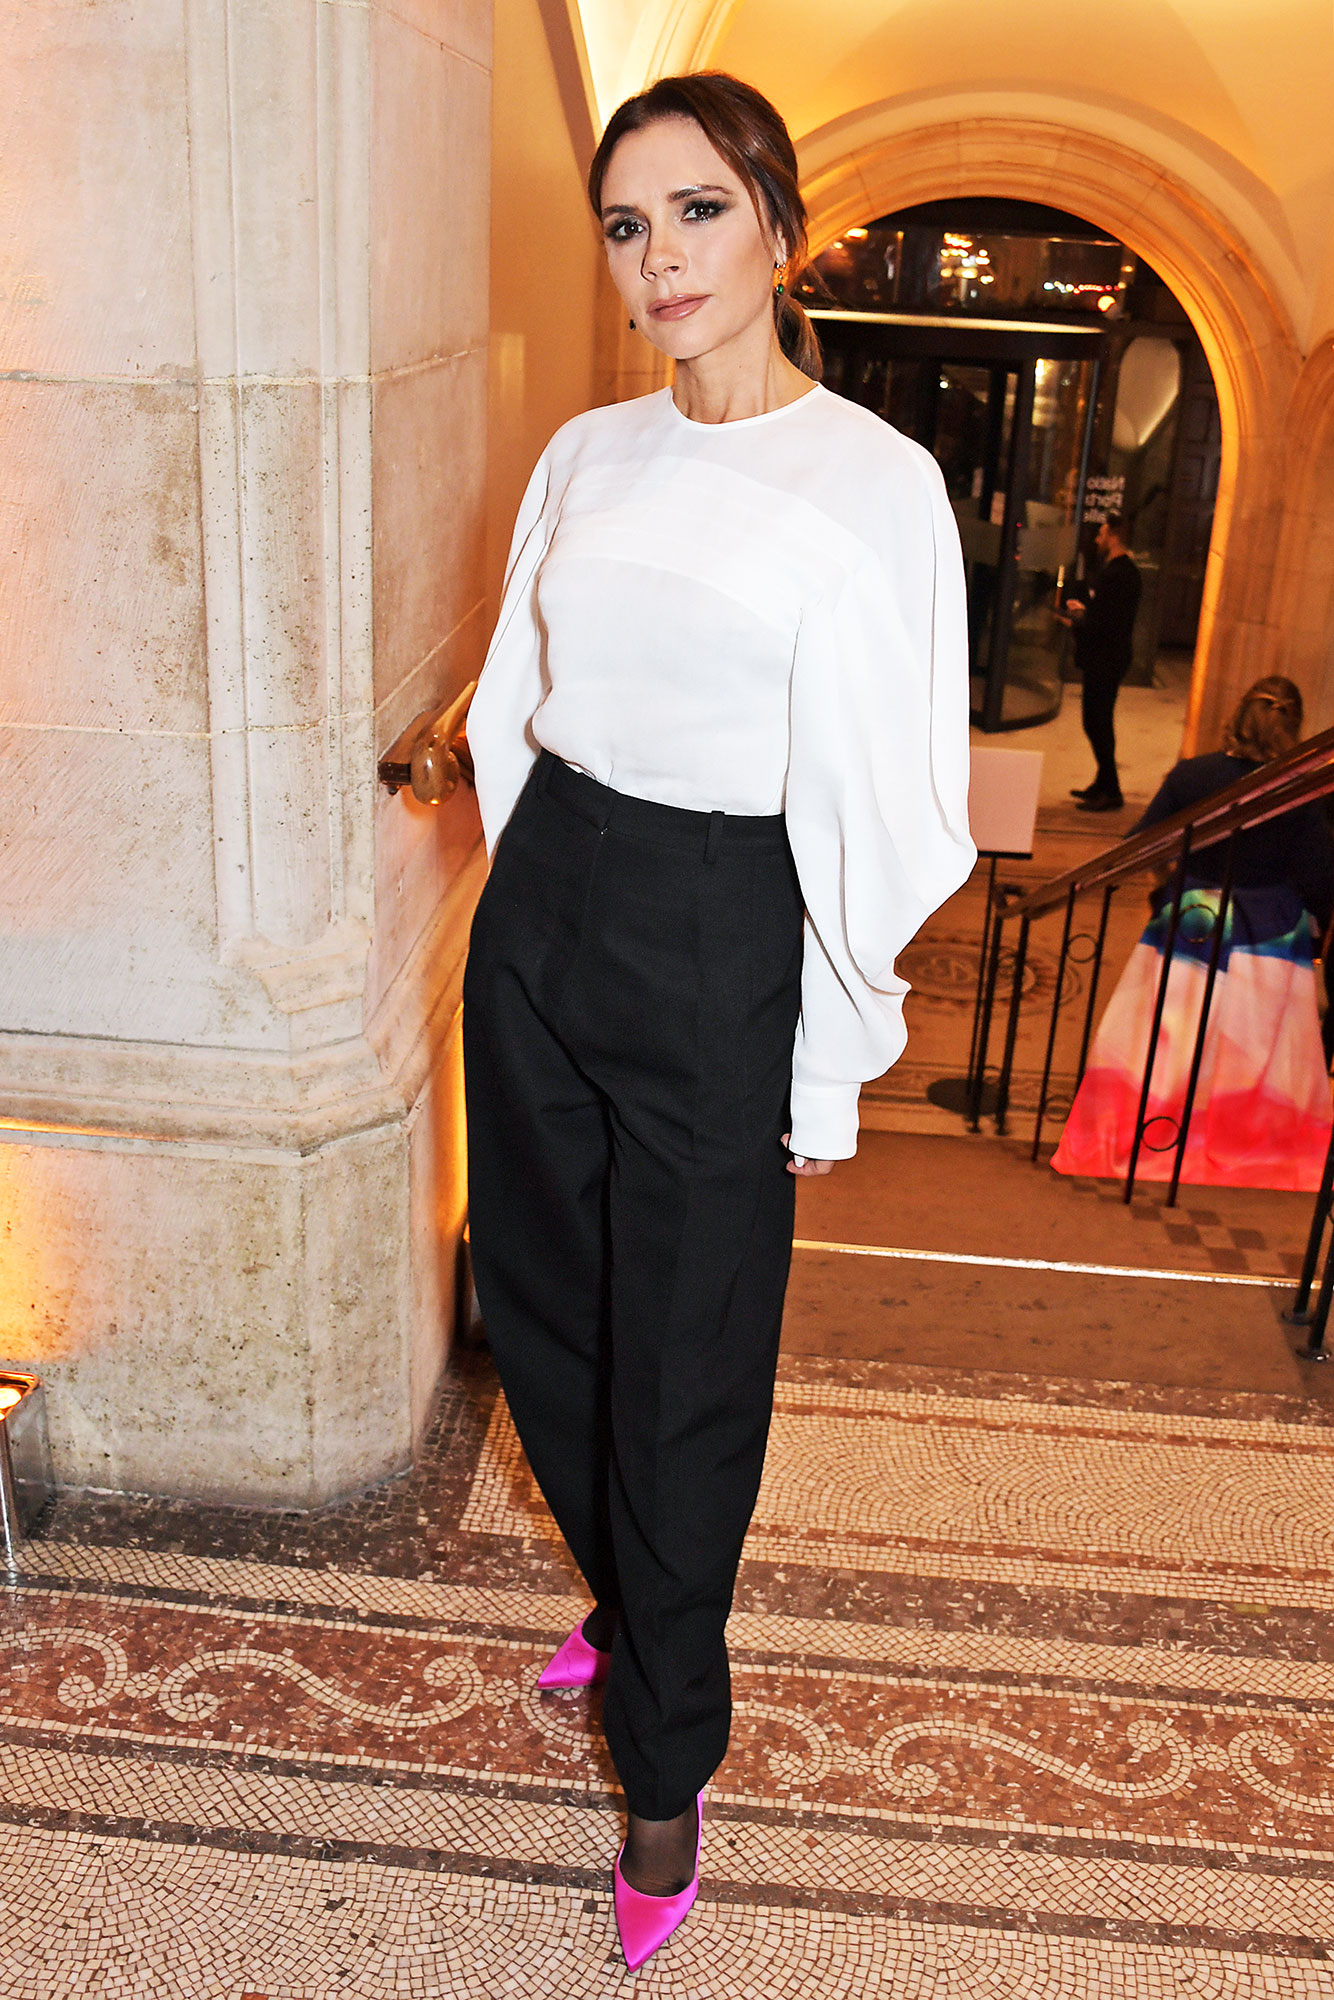 victoria beckham The Portrait Gala - Fuchsia pumps were a colorful addition to the former Spice Girl's black-and-white ensemble at the 2019 Portrait Gala.